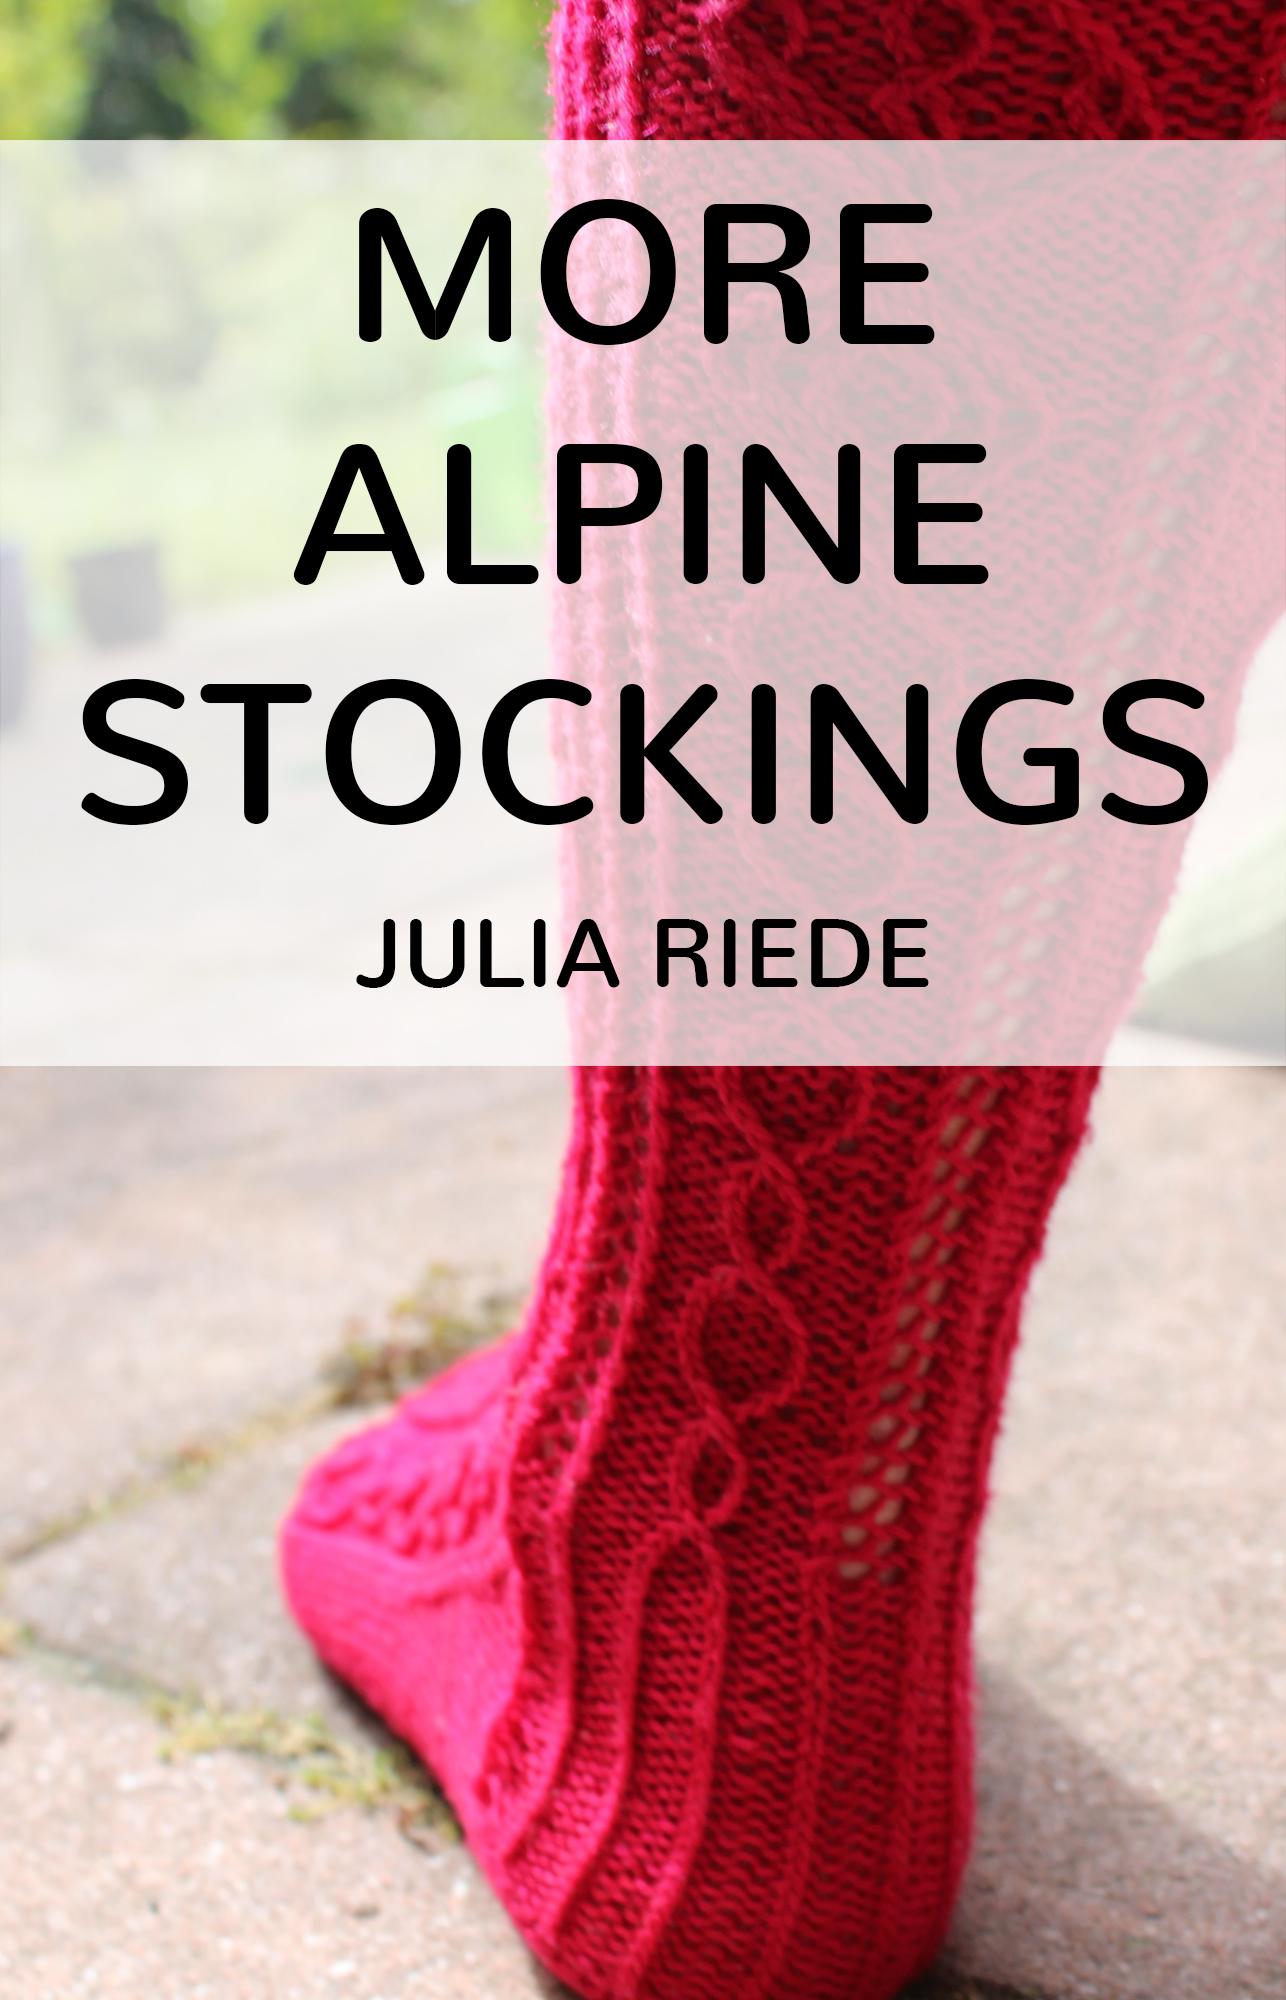 More Alpine Stockings